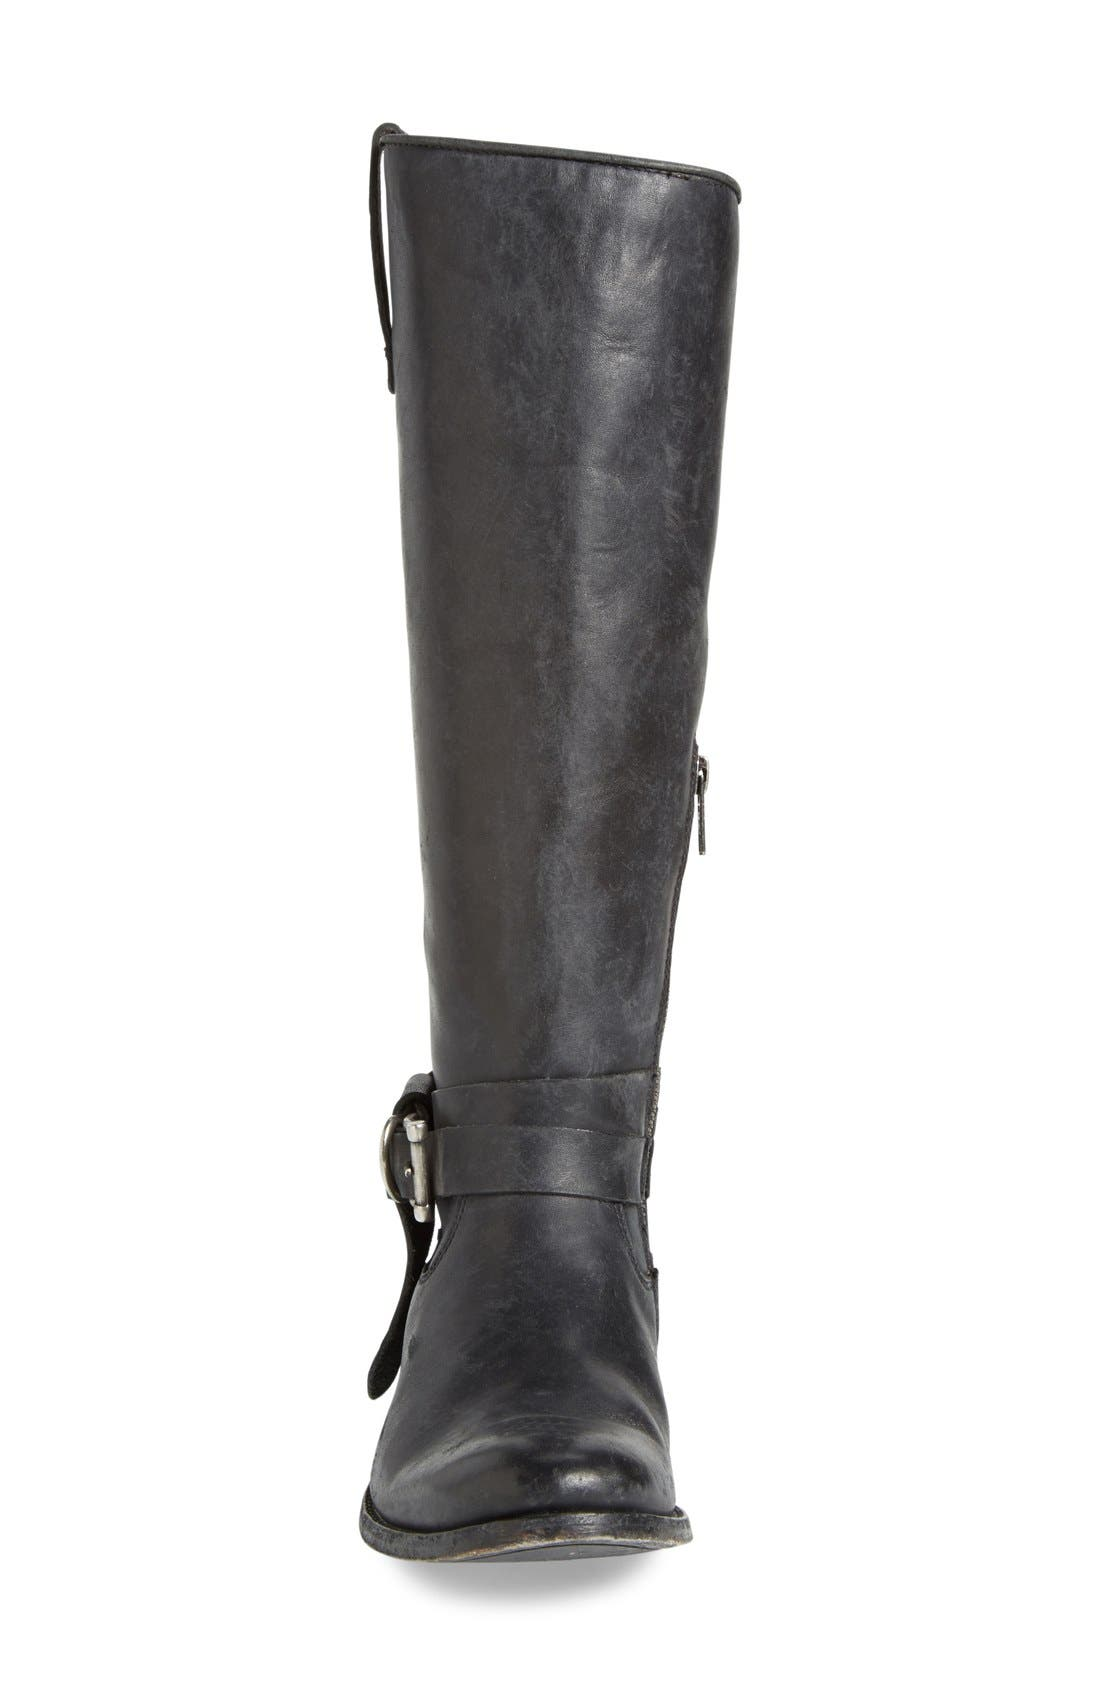 Frye Melissa Leather Knotted Tall Riding Boot - Wide Calf Available